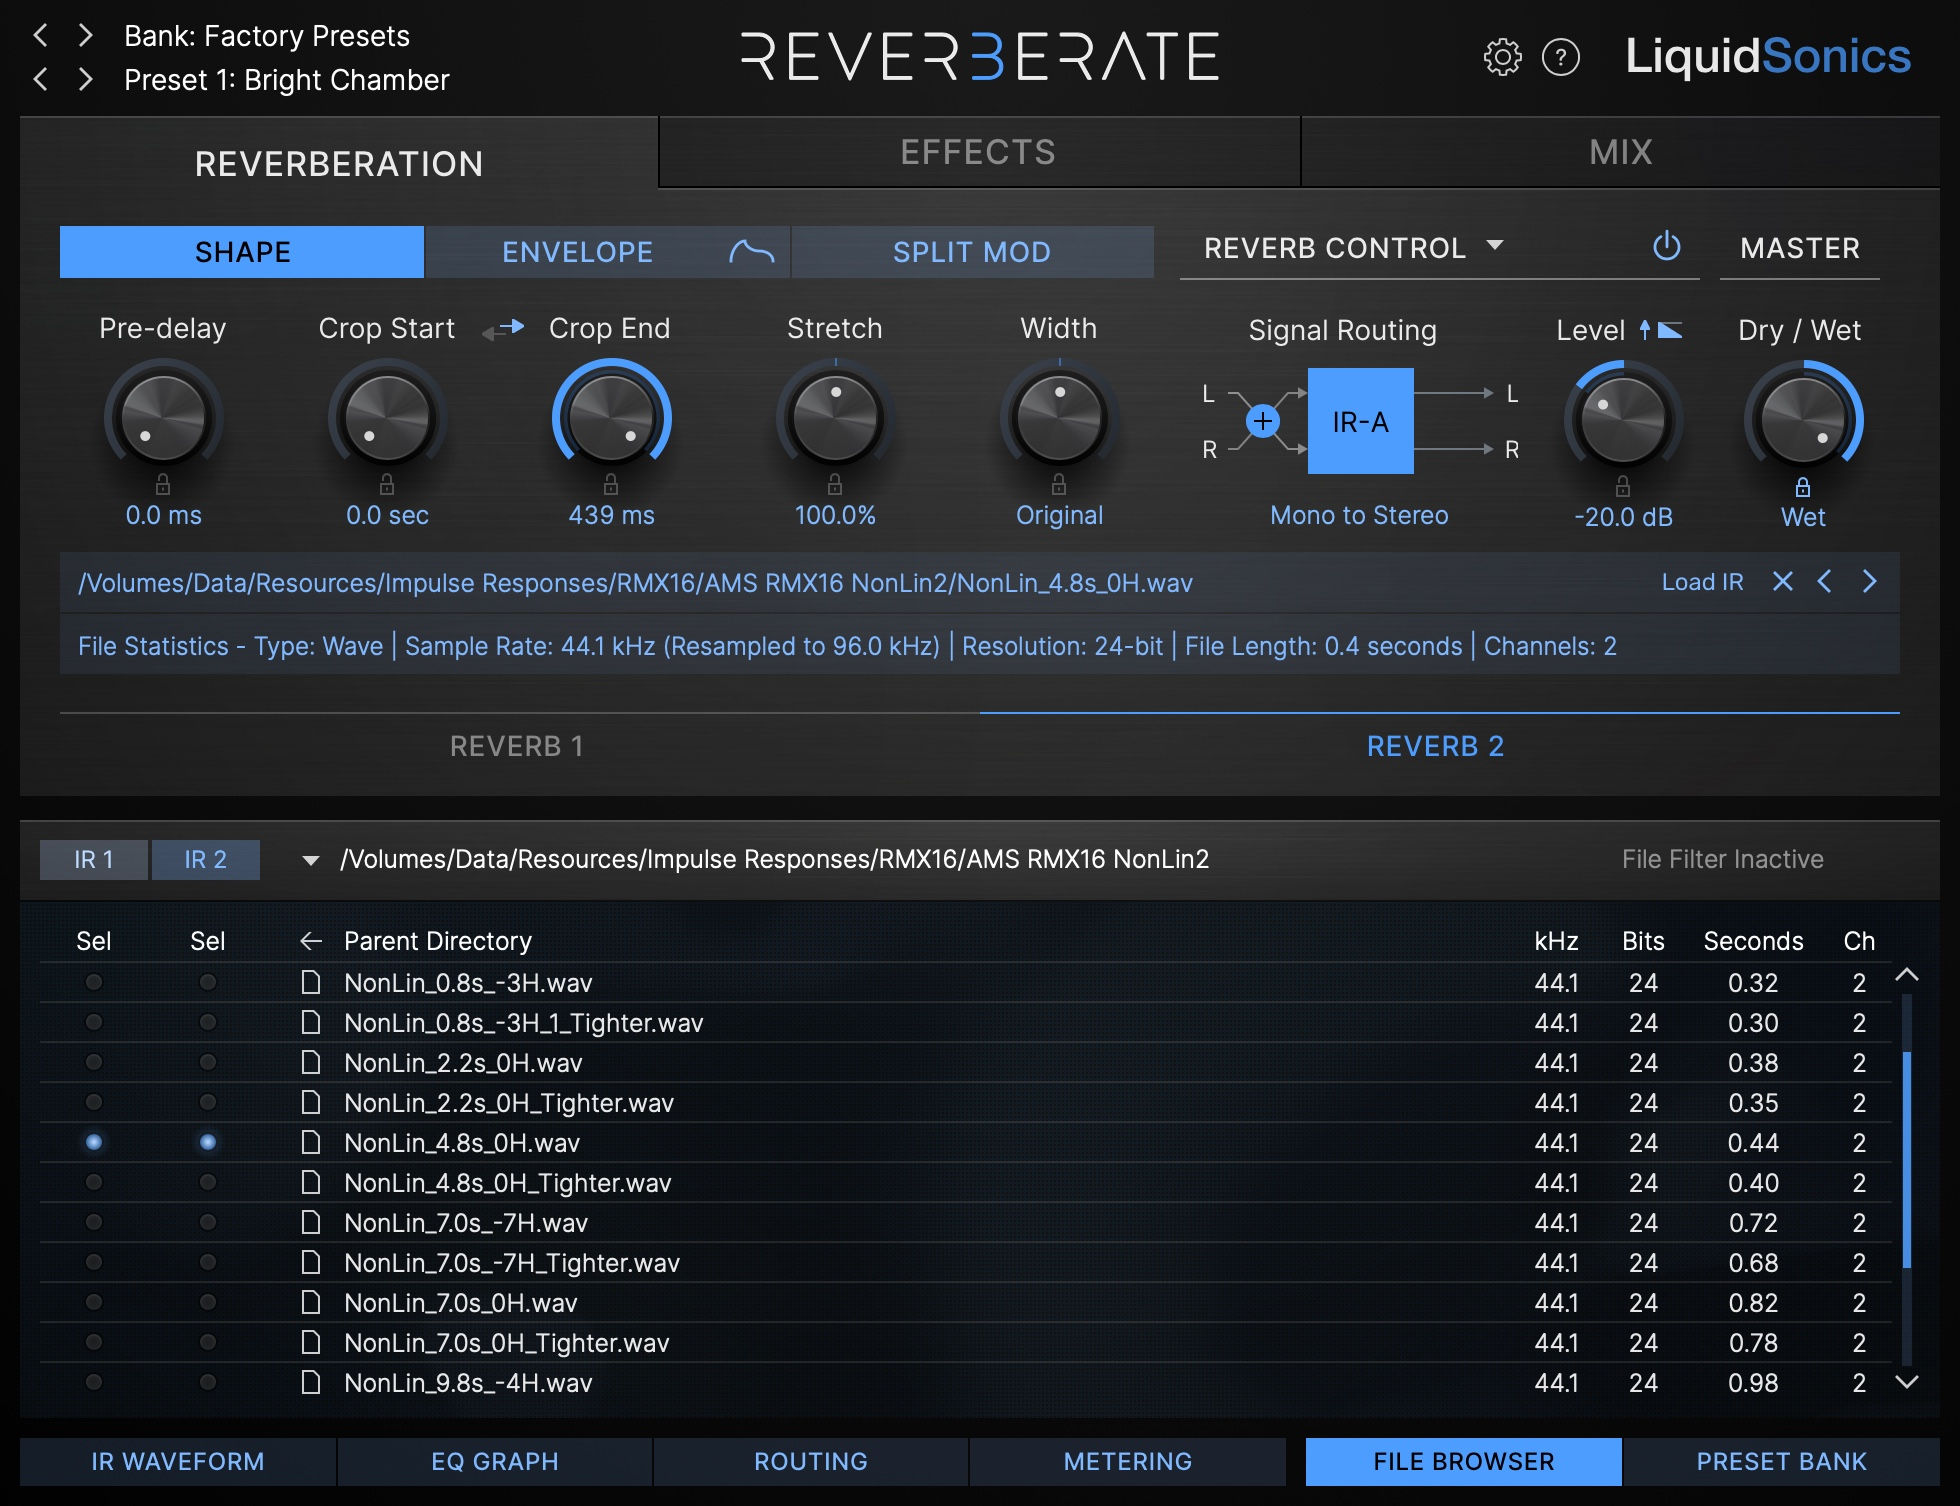 Reverberate 3 - RMX16 Files